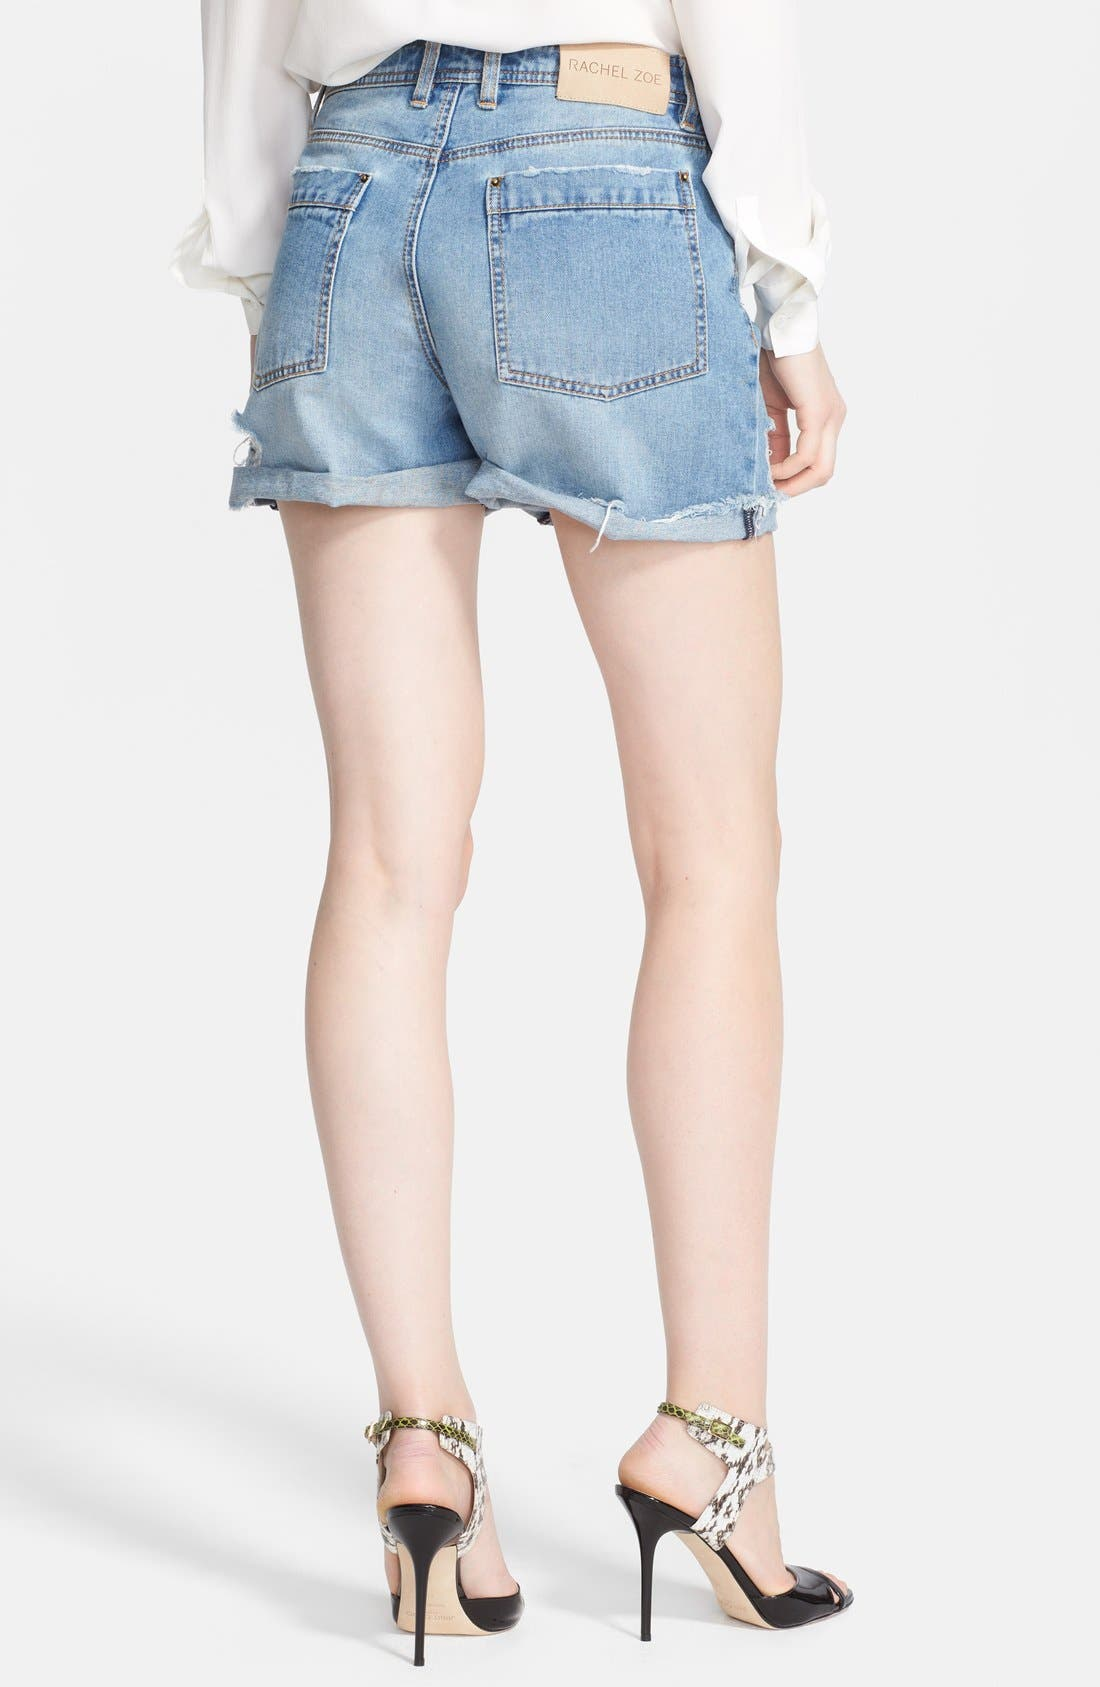 Alternate Image 2  - Rachel Zoe 'Jocelyn' Destroyed Boyfriend Jean Shorts